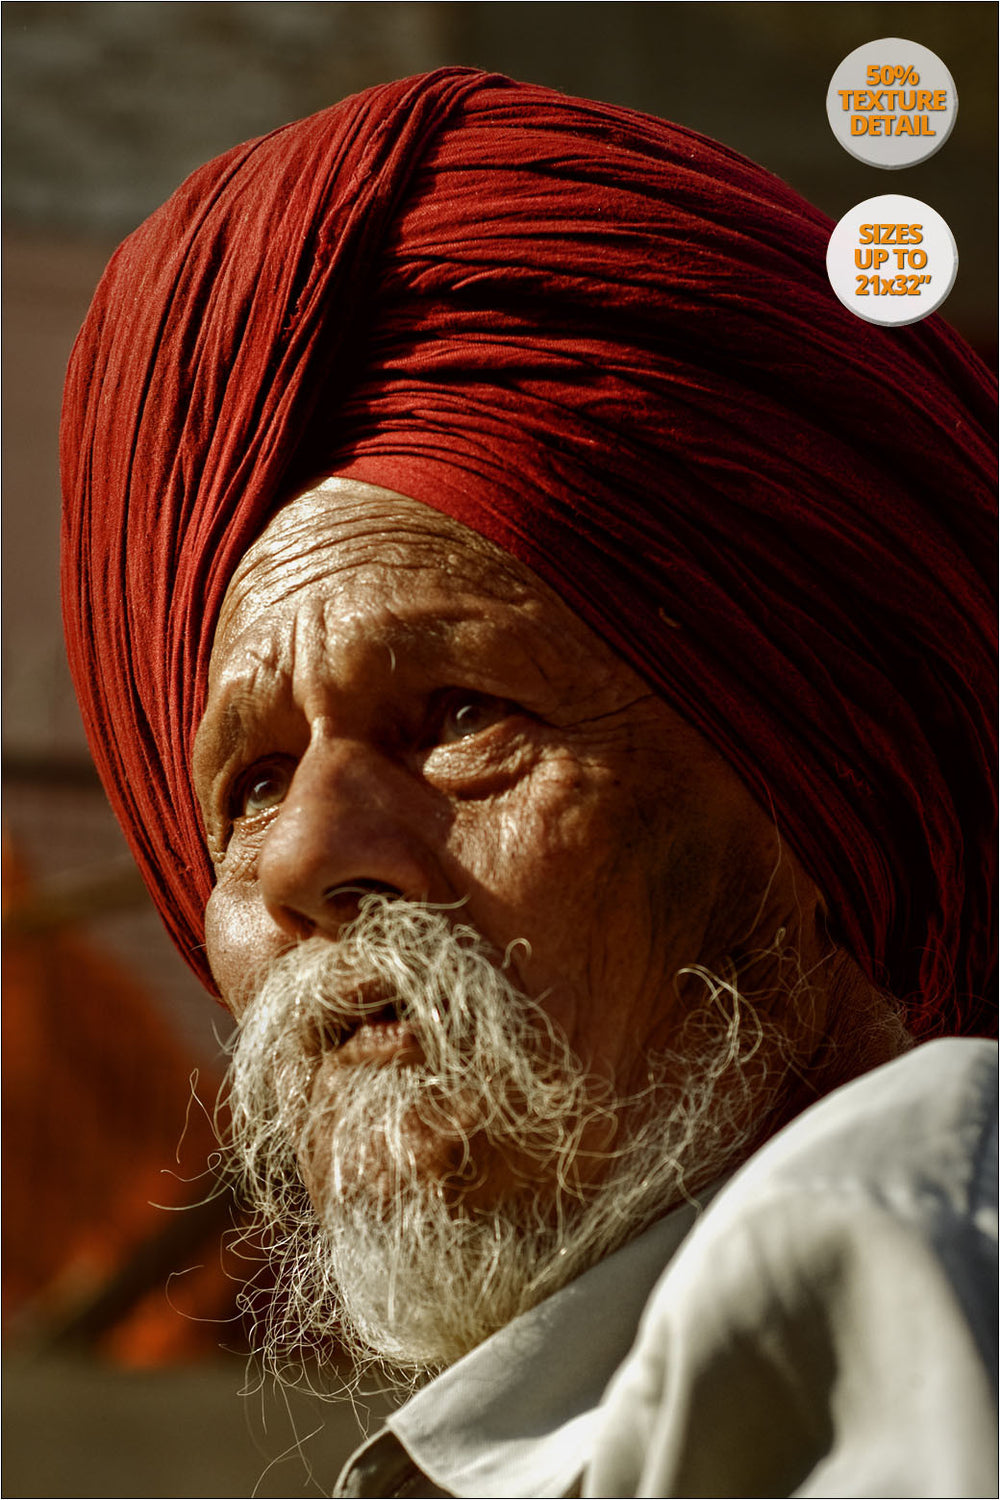 Portrait of a Sikh, Chandigarh, India. | 50% Magnification Detail View.